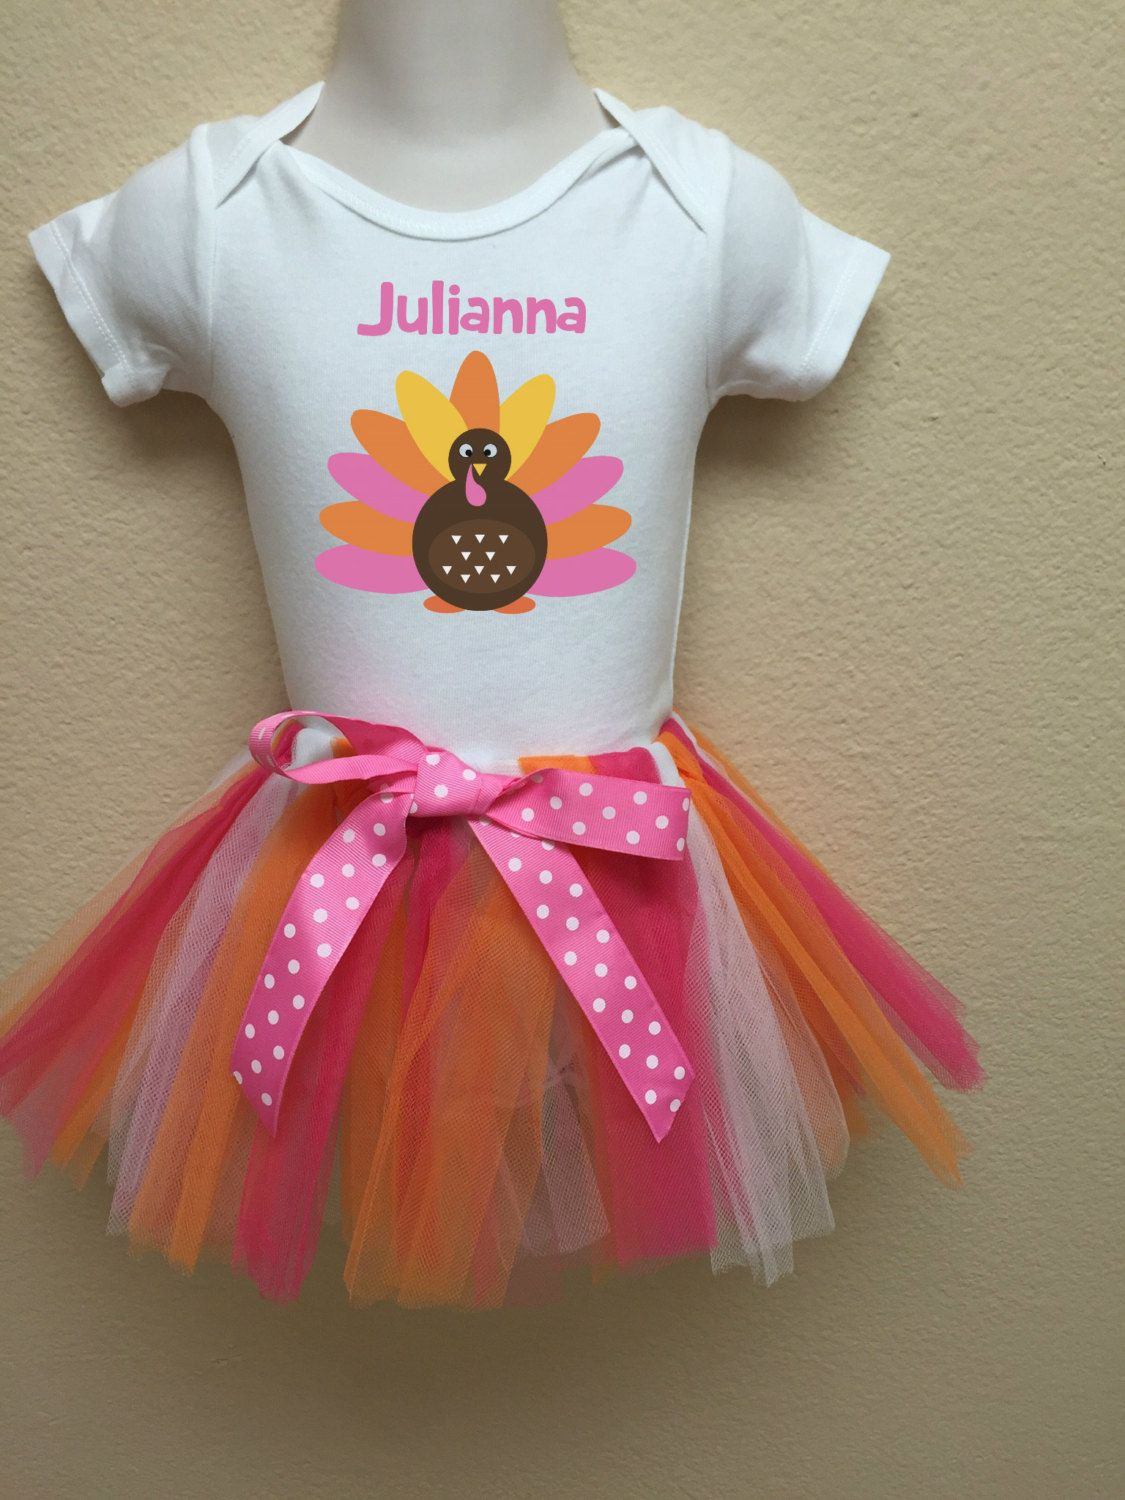 c5c78ad0e Thanksgiving Tutu Outfit with Turkey Girls Thanksgiving Outfit Personalized  Any Name Pink Orange Tutu by FunMunchkin on Etsy